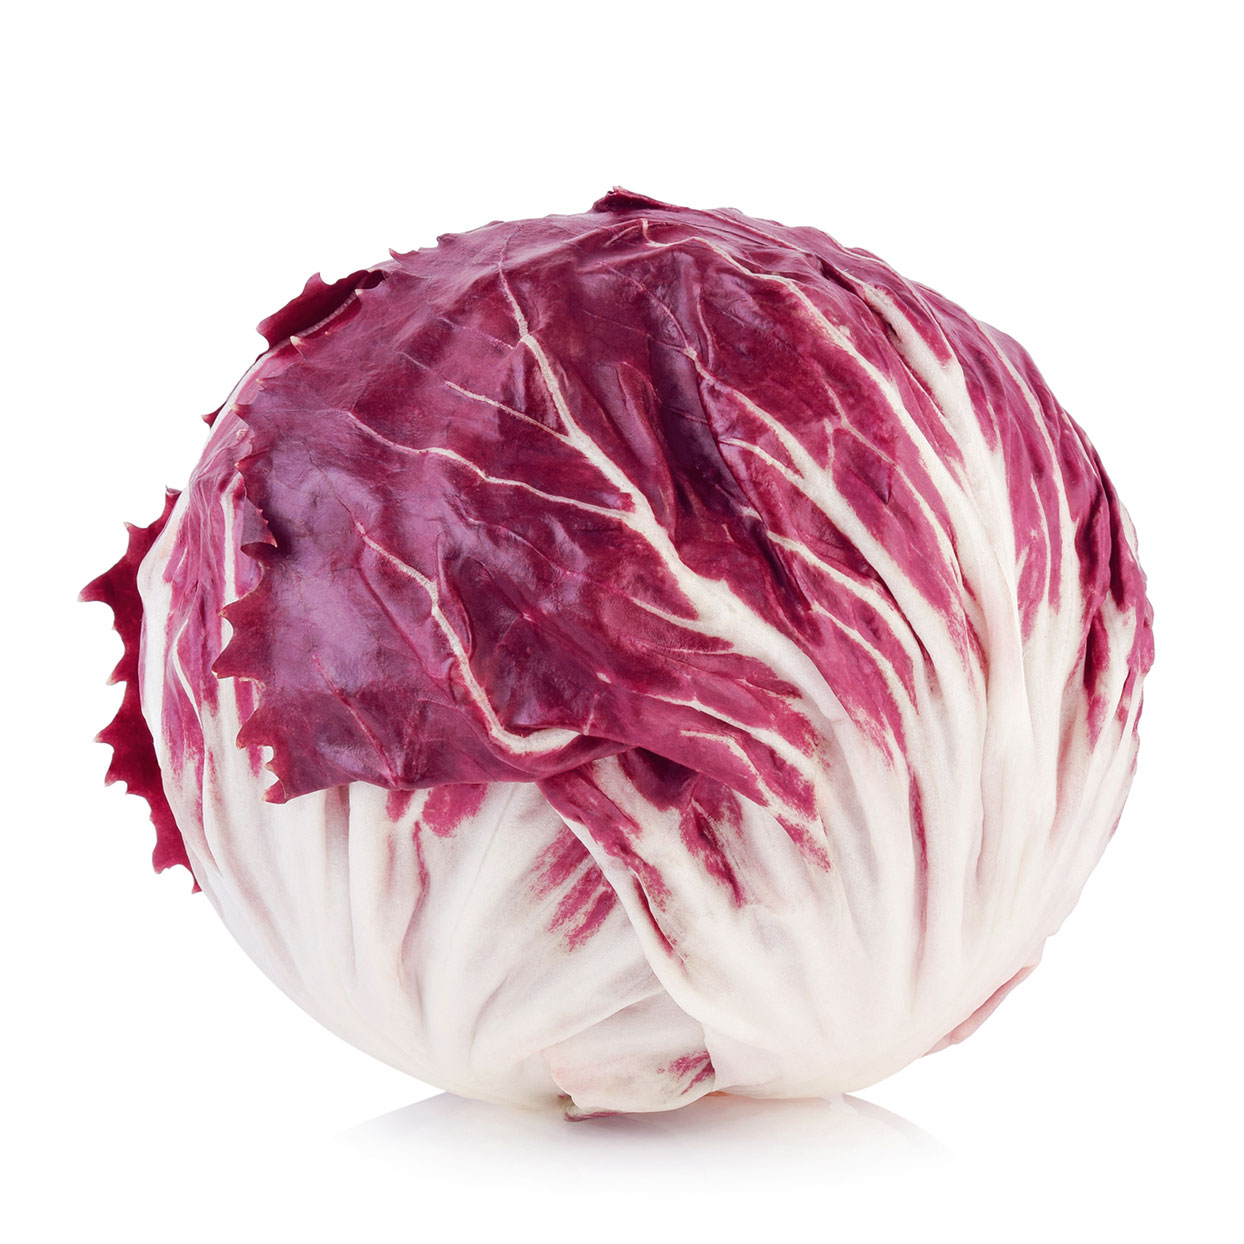 There Are Two Types of People in the World—Those Who Love Radicchio and Those Who Hate It.